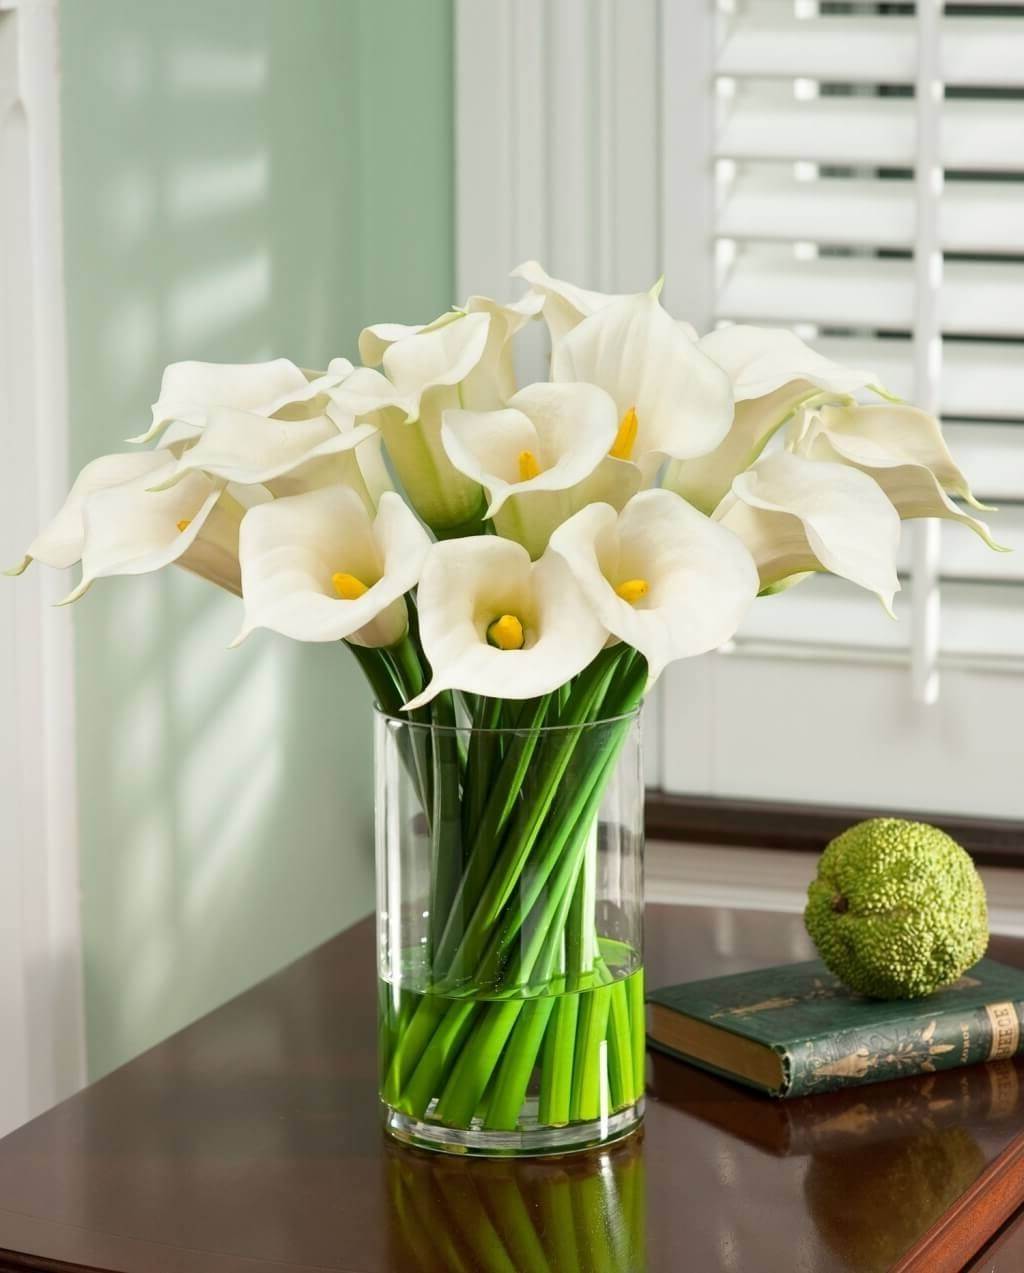 Artificial Flowers In Vase With Fake Water Australia & Artificial Flowers In Vase With Fake Water Australia | Vase | Silk ...